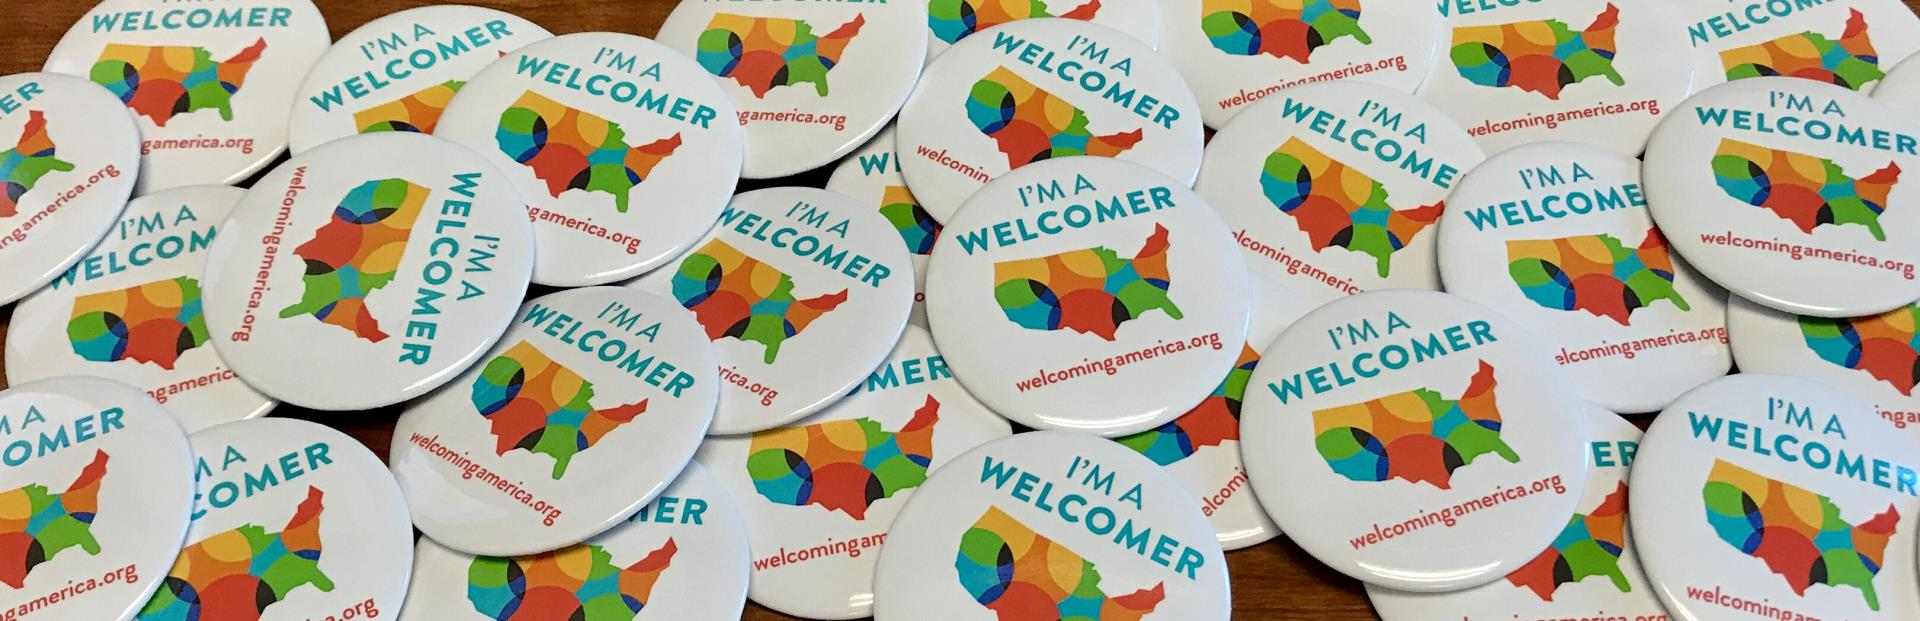 Image of Welcoming Week buttons spread out on table